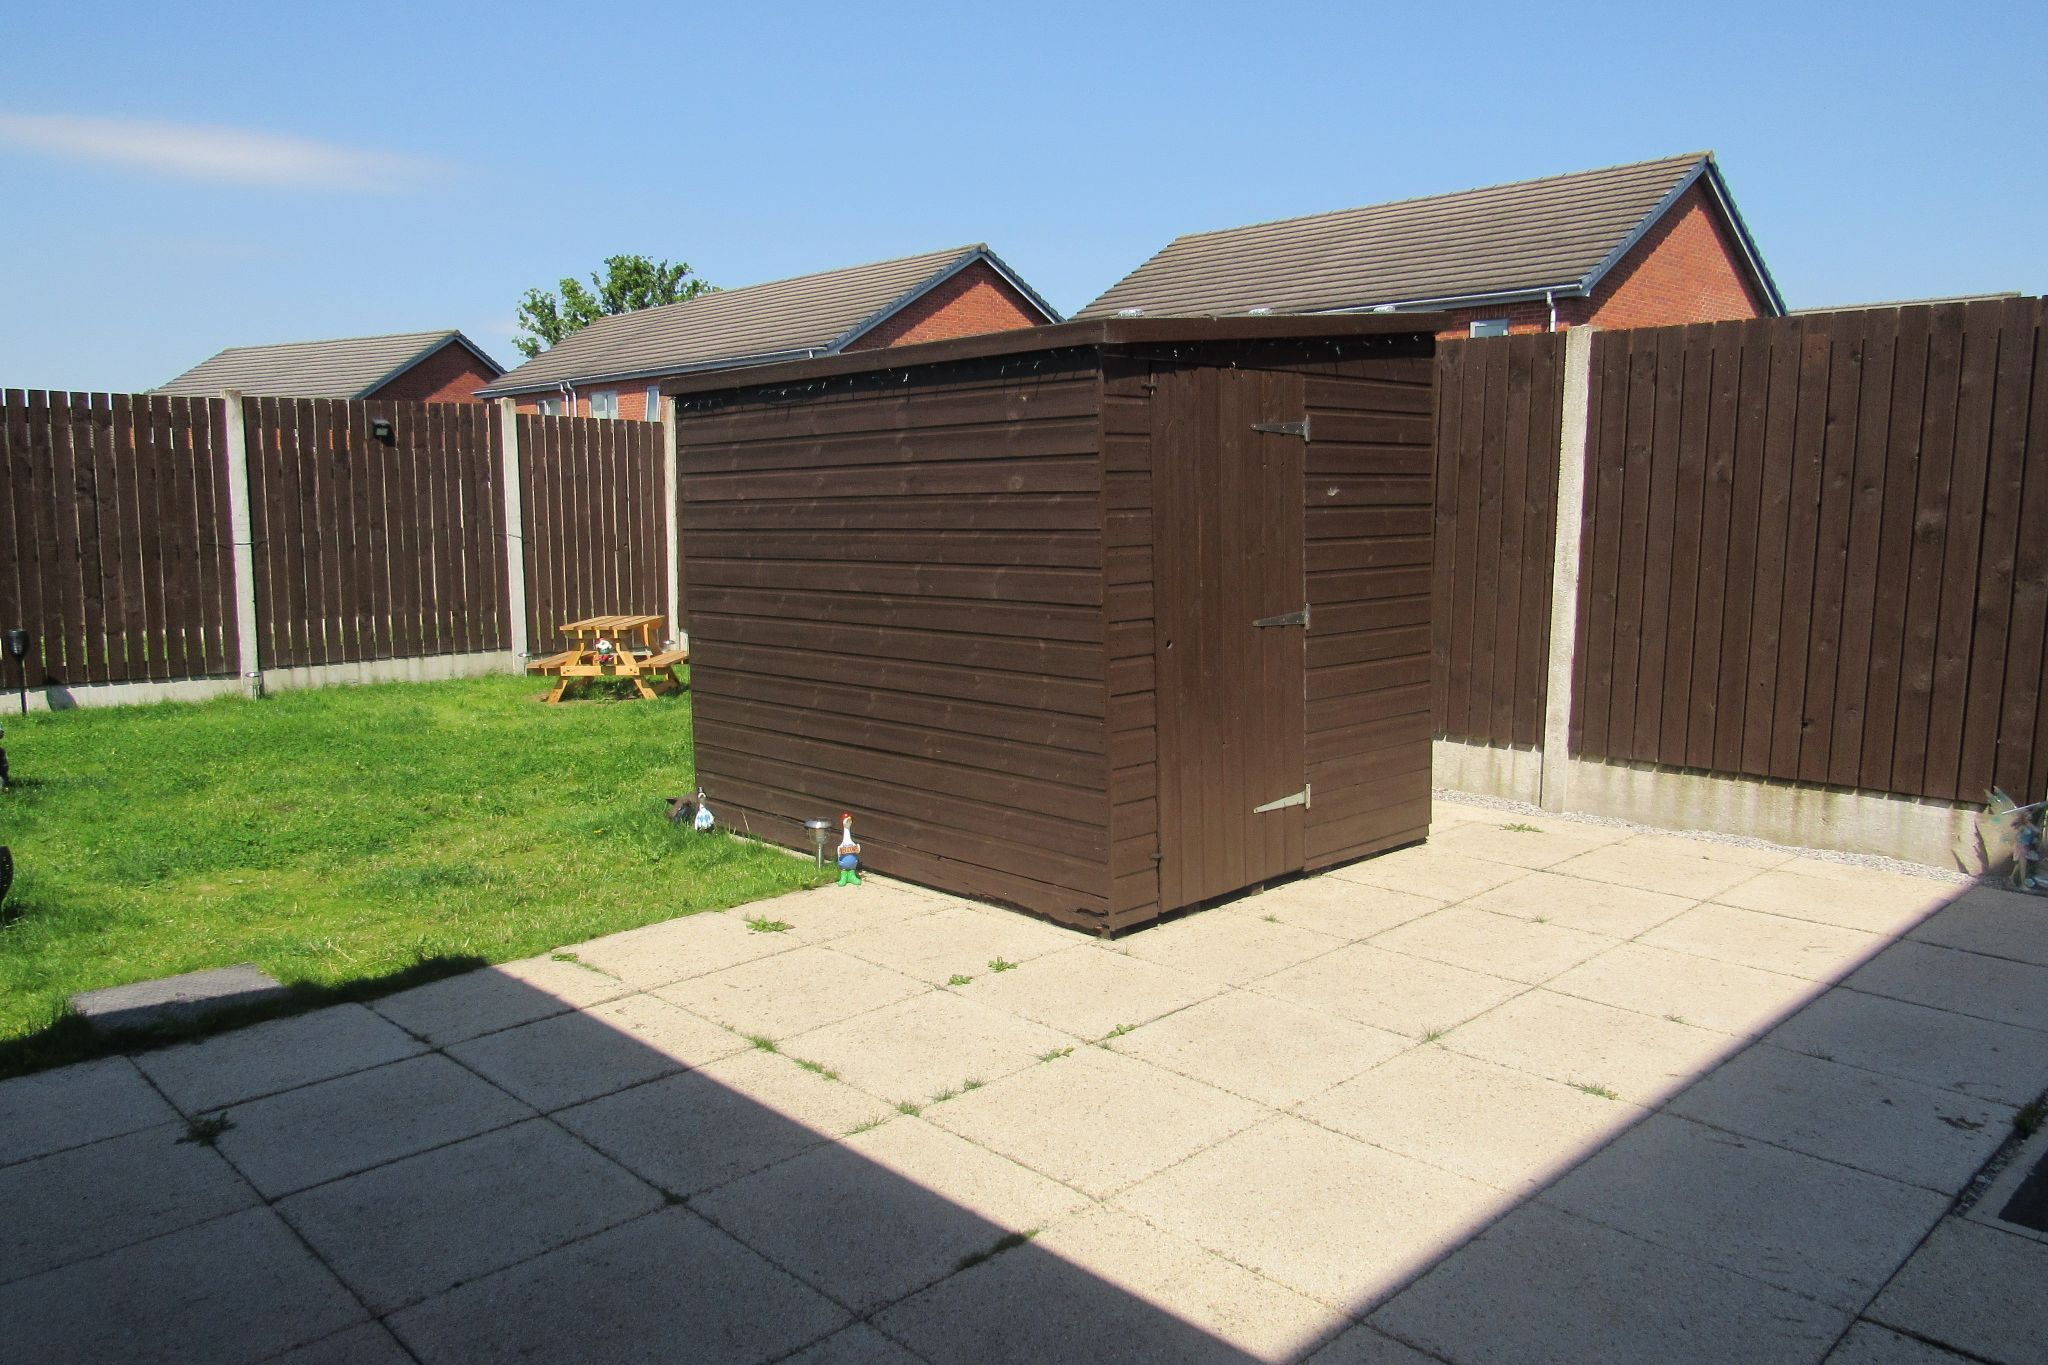 3 bedroom semi-detached house SSTC in Manchester - Photograph 15.